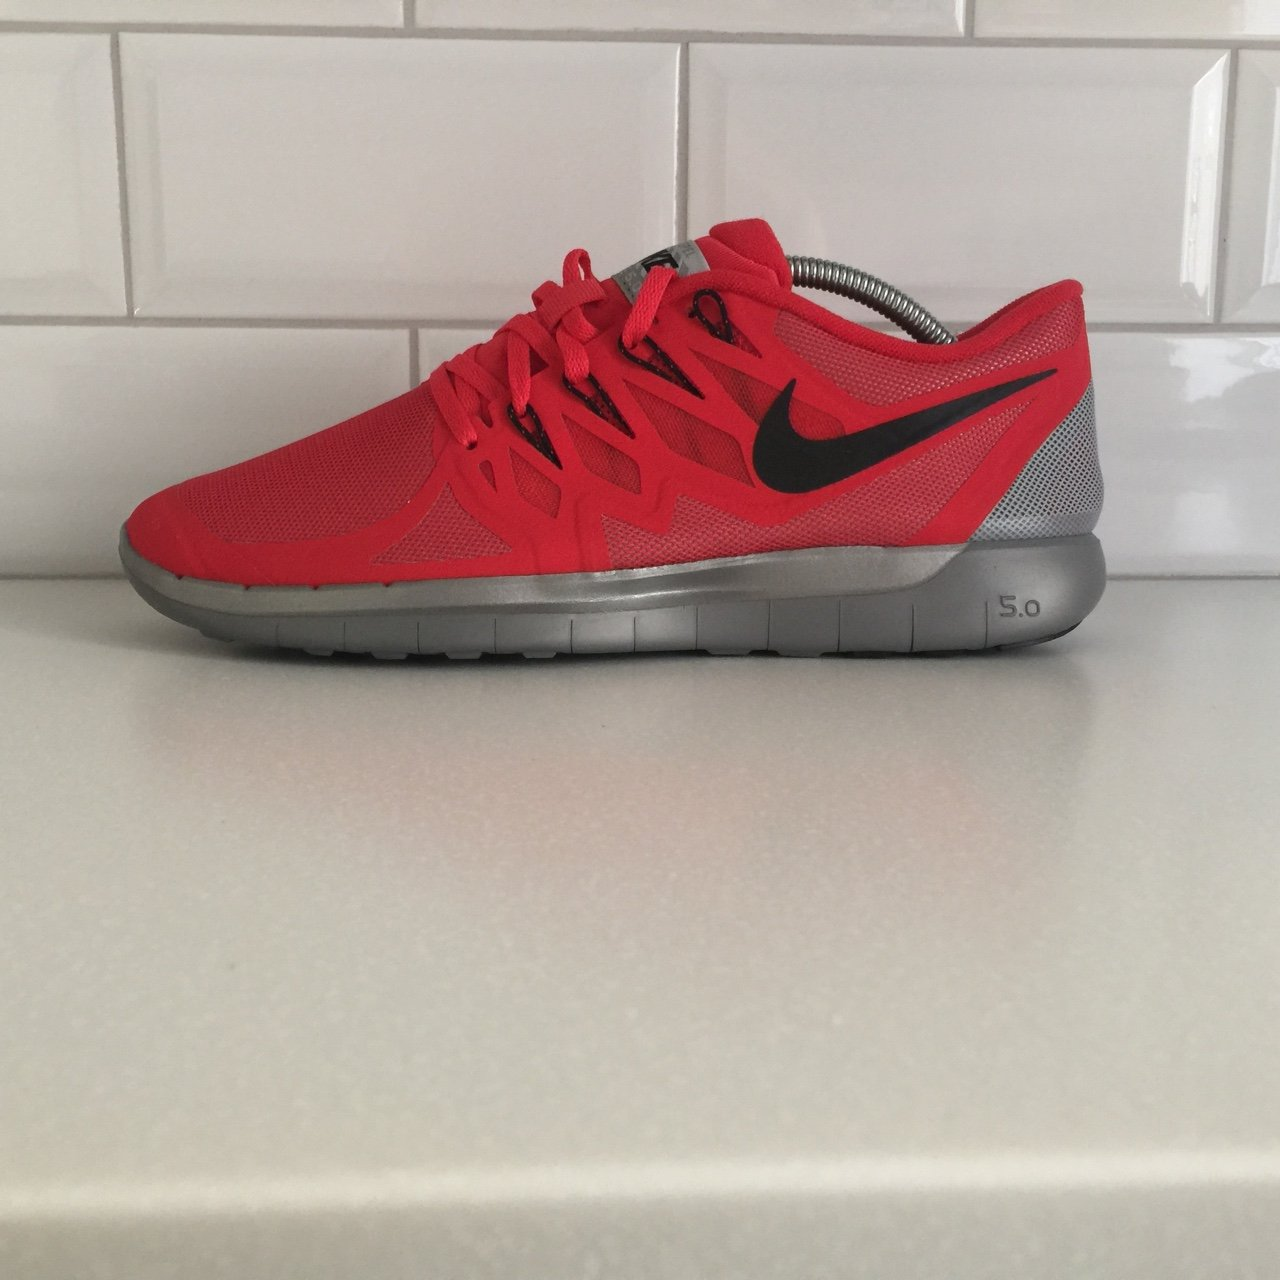 sports shoes d8a23 de9e7  gregworsley16. 2 years ago. Sheffield, South Yorkshire, UK. Nike Free Run  5.0 Red Reflective Silver ...